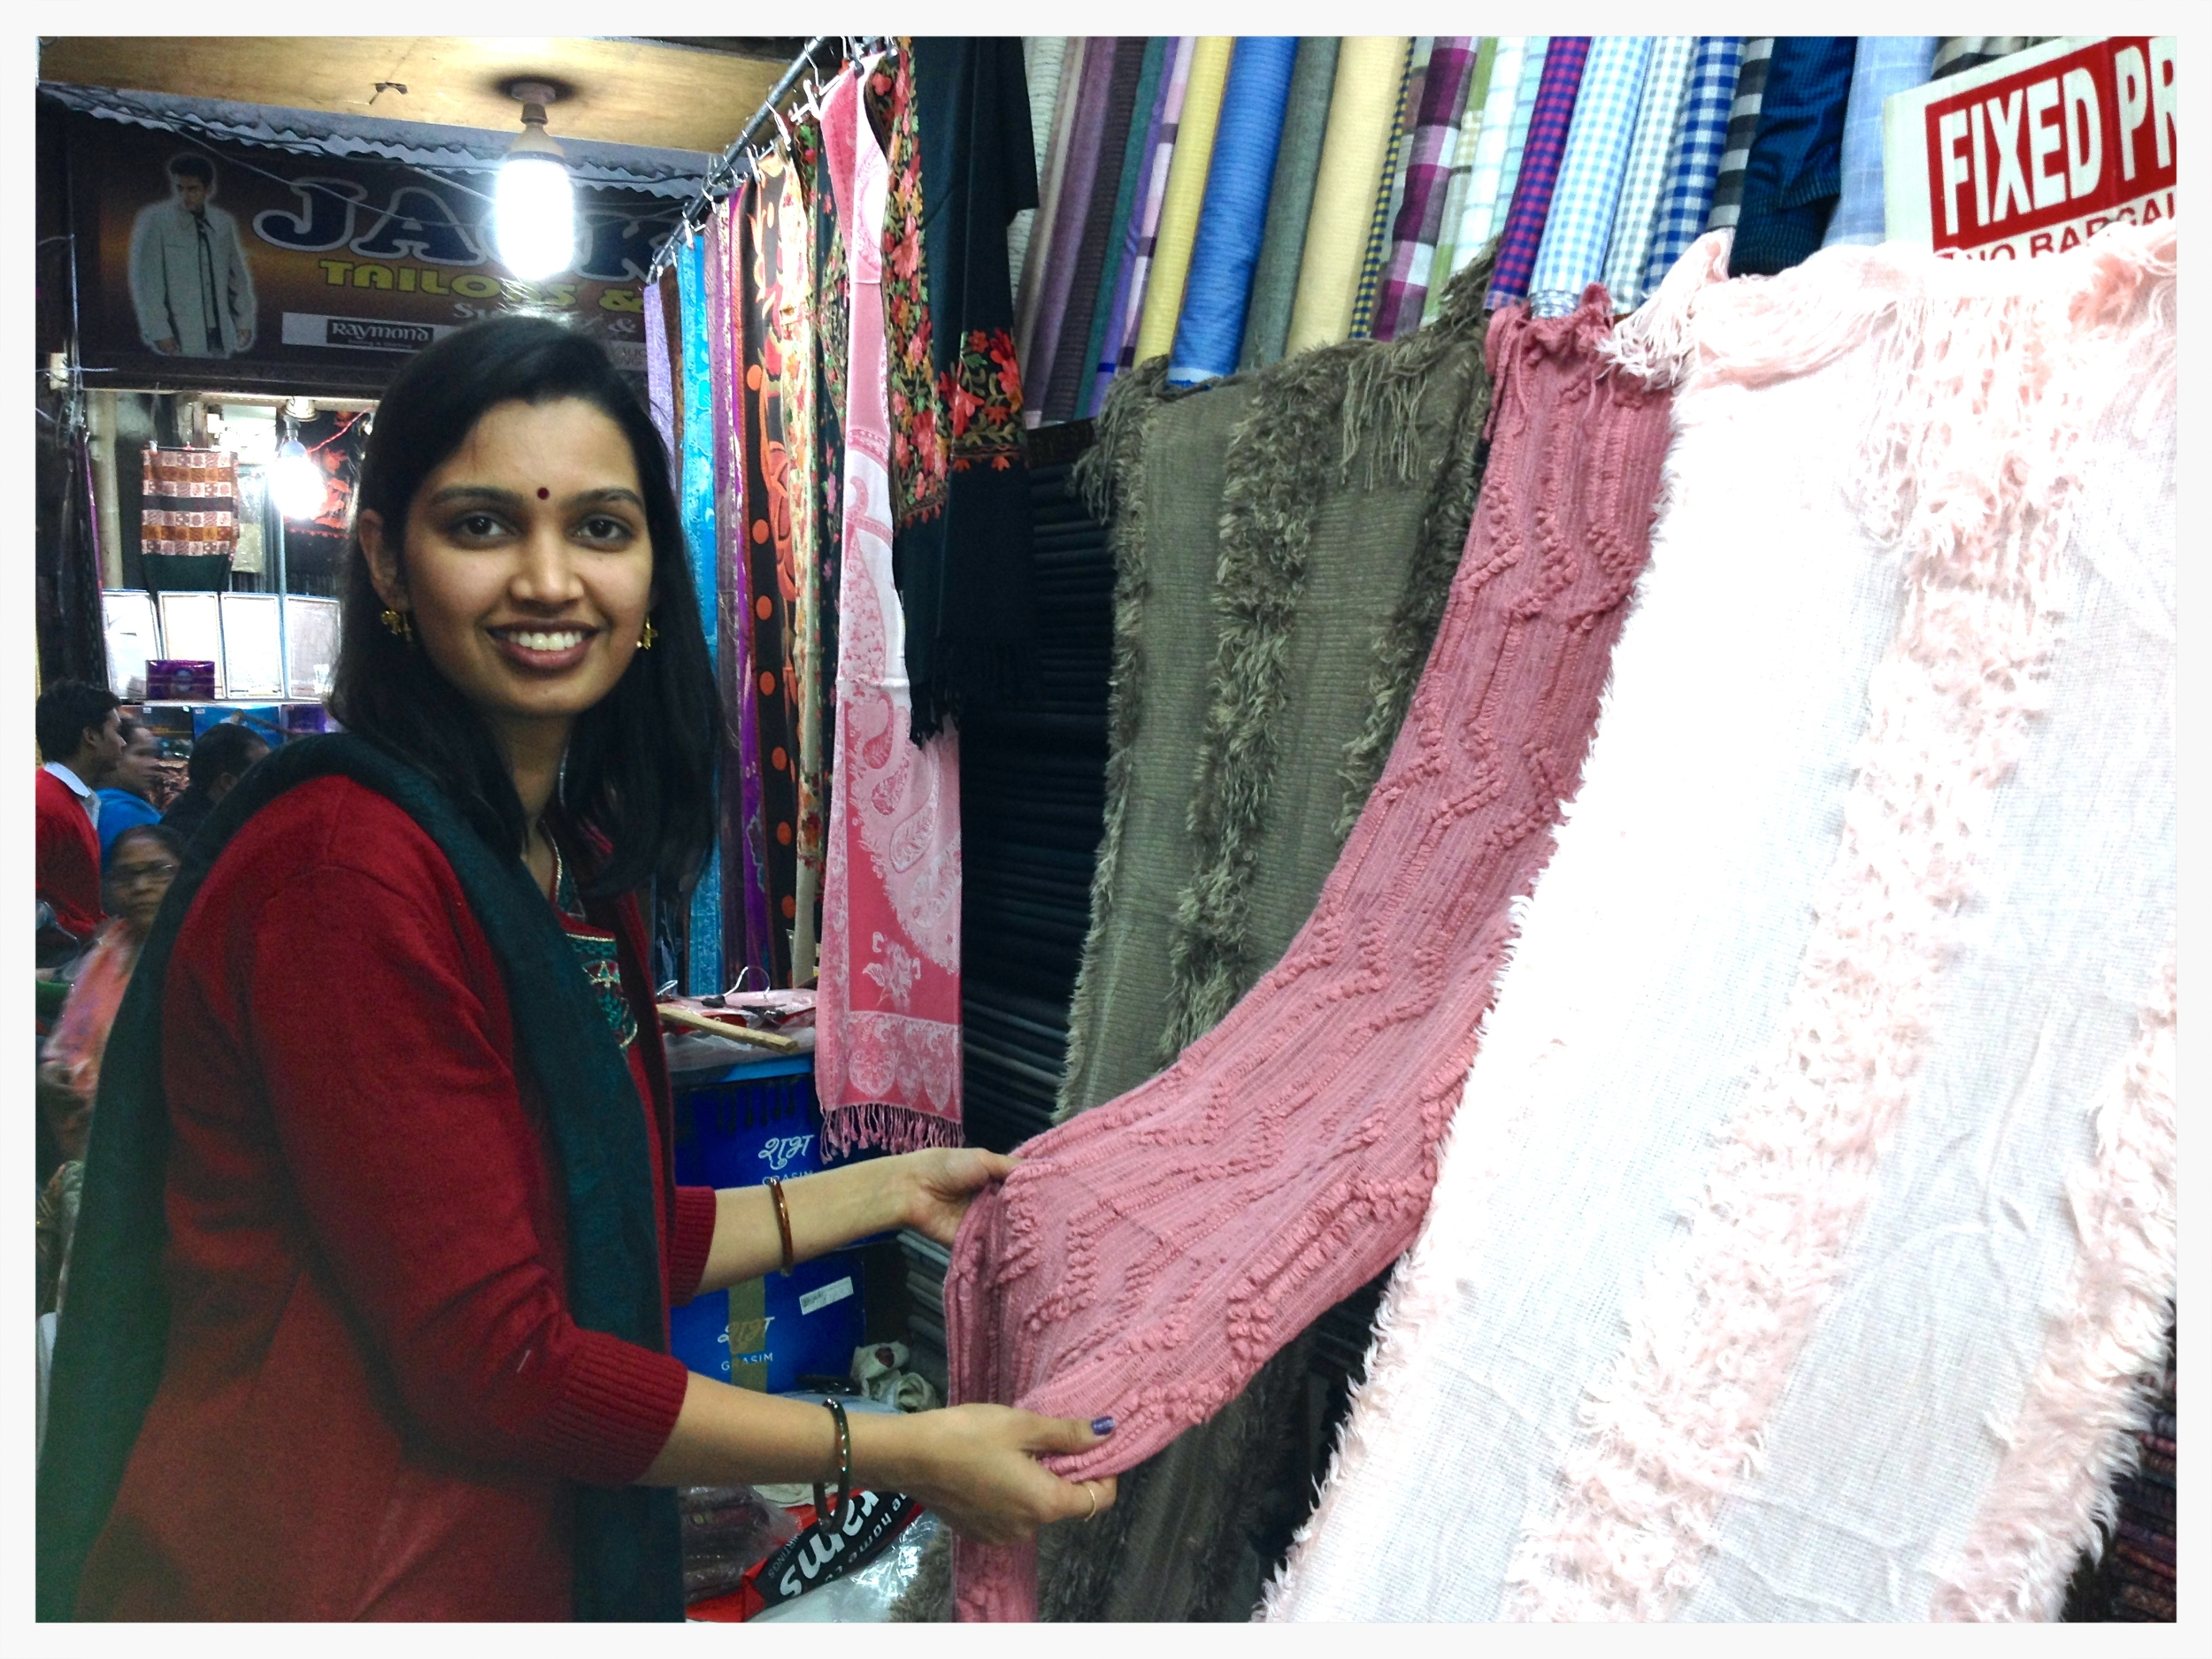 Richa searching for fabric :)